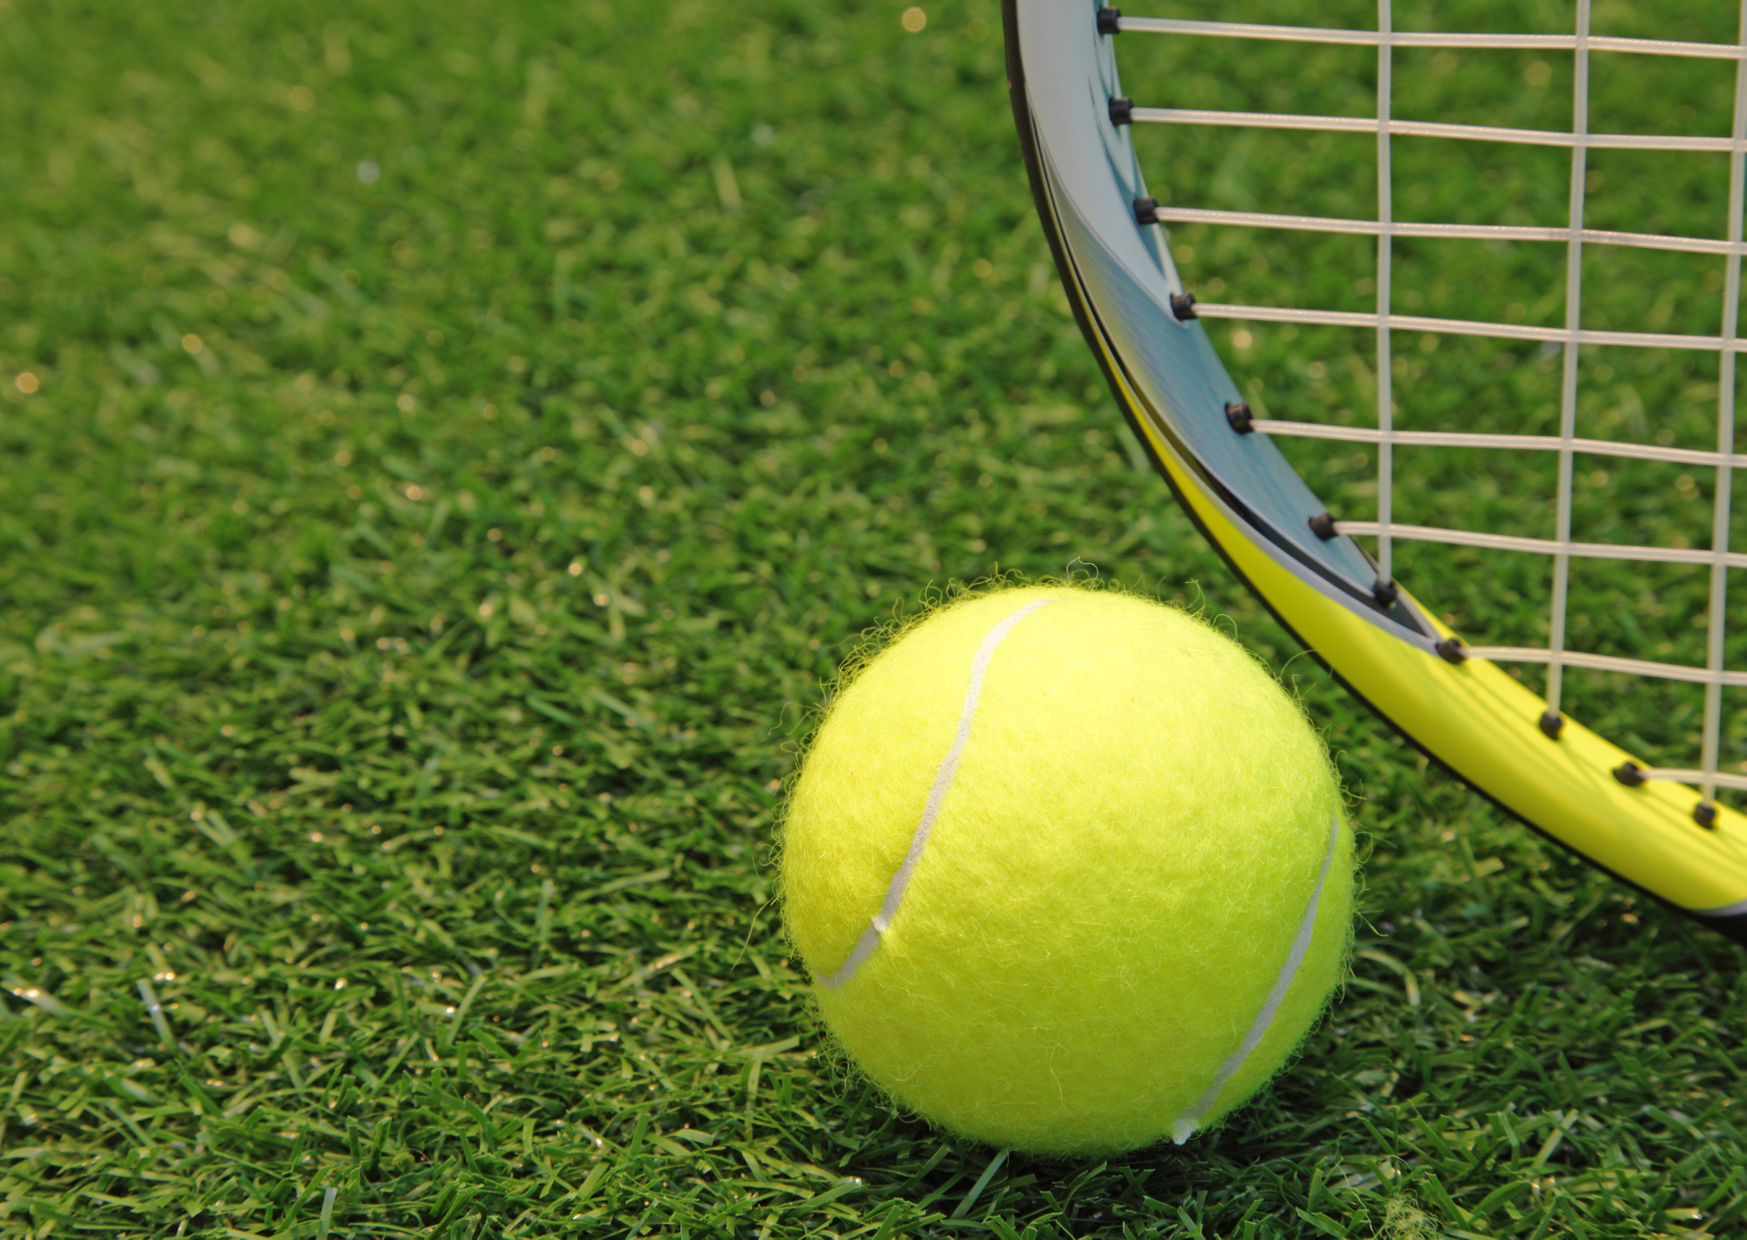 a yellow tennis ball in the grass of Is Lawn Tennis an Indoor Game?